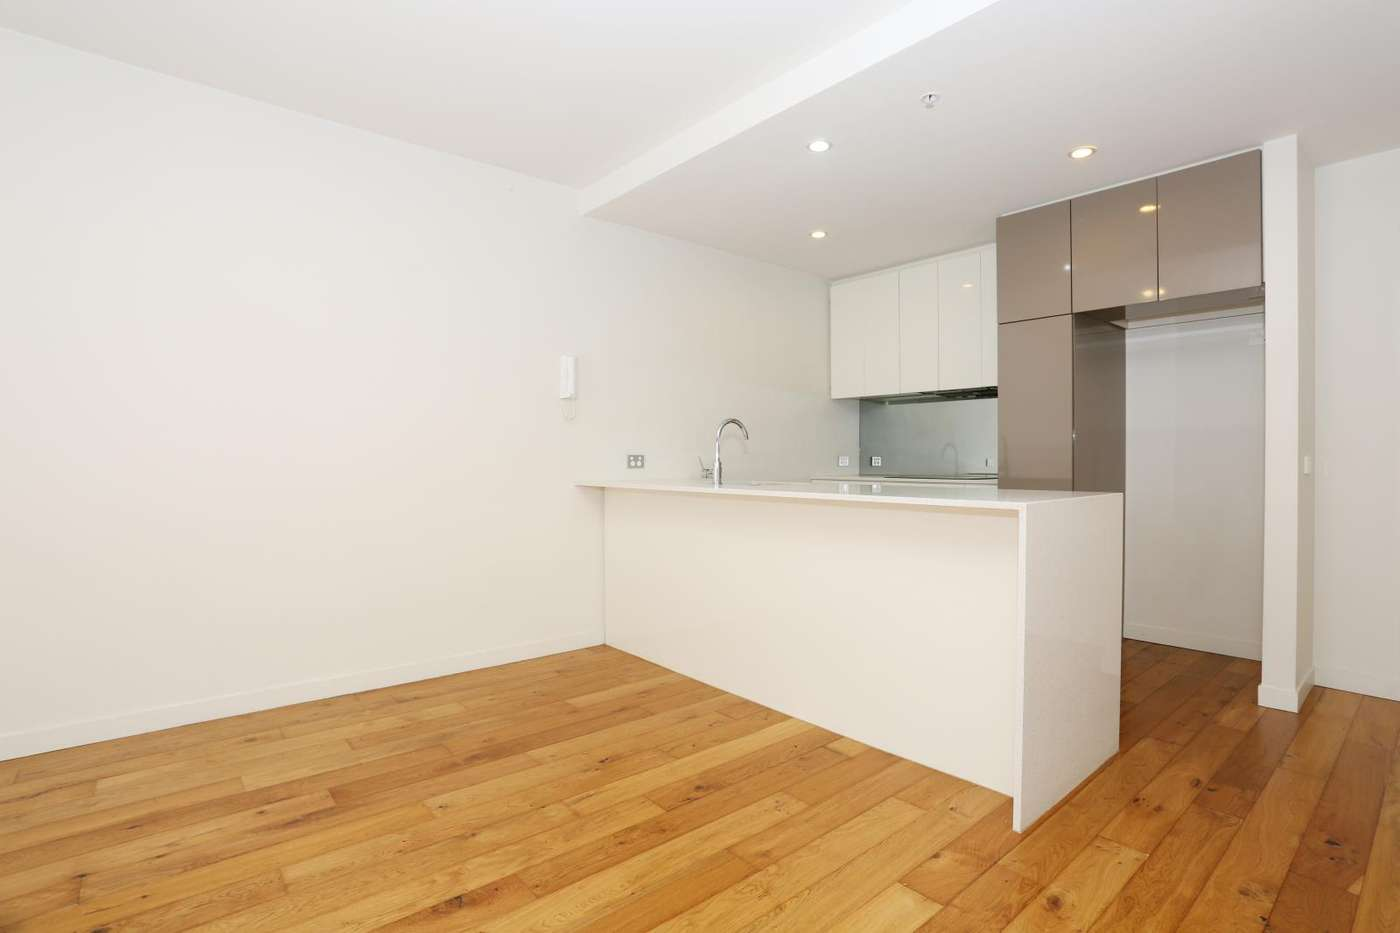 Main view of Homely apartment listing, 1106/176 Edward Street, Brunswick East, VIC 3057